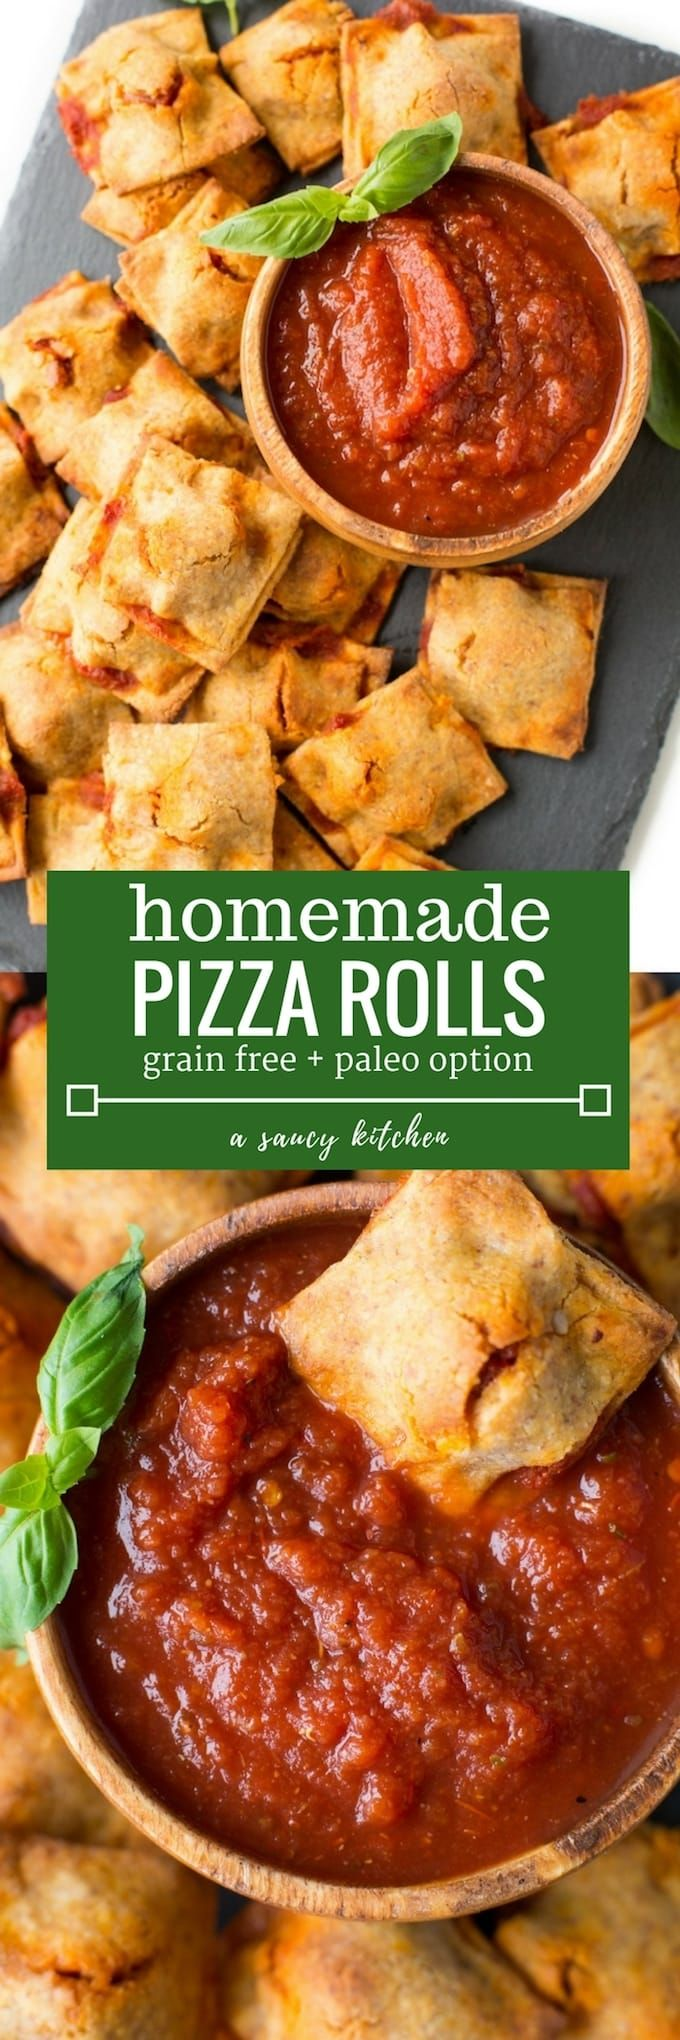 'Healthified Homemade Pizza Rolls made with a grain free sweet potato crust | Paleo + Gluten Free + Dairy Free